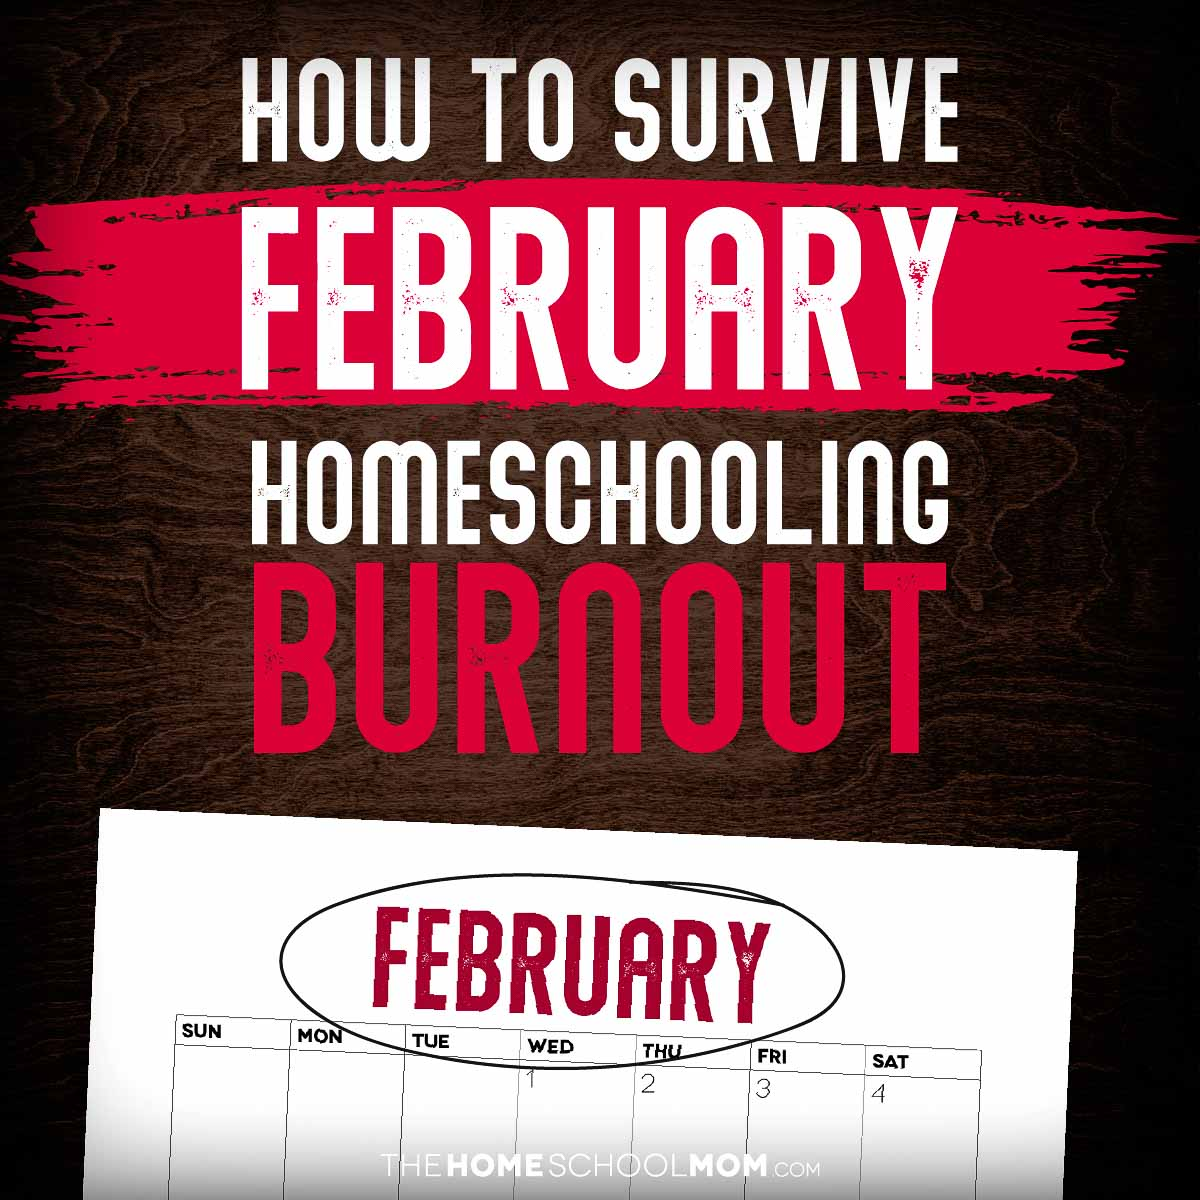 How to Survive February Homeschooling Burnout